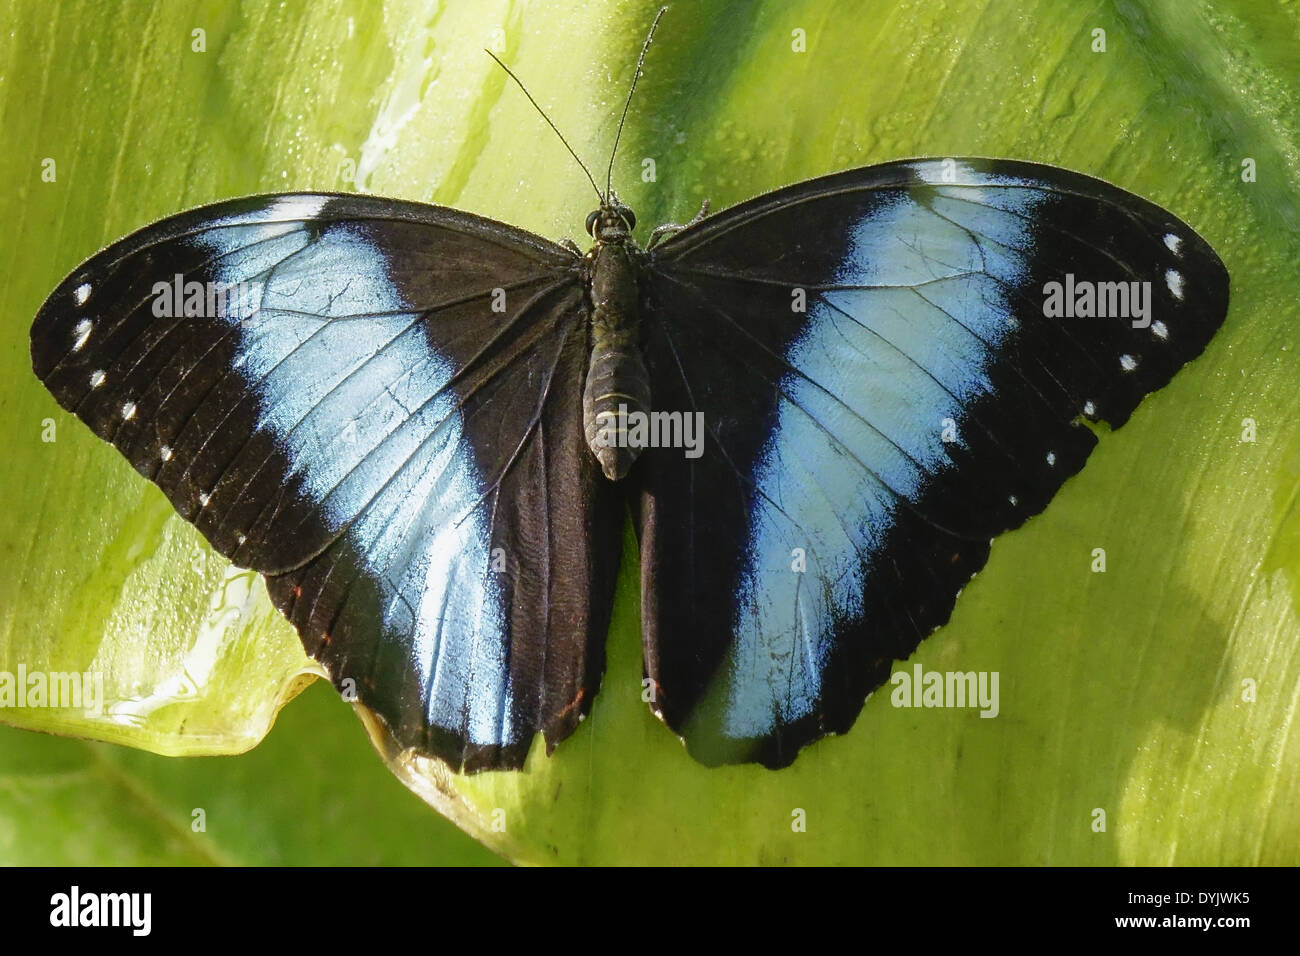 Tropischer Schmetterling, Blauer Morphofalter (Morpho peleides) Stock Photo